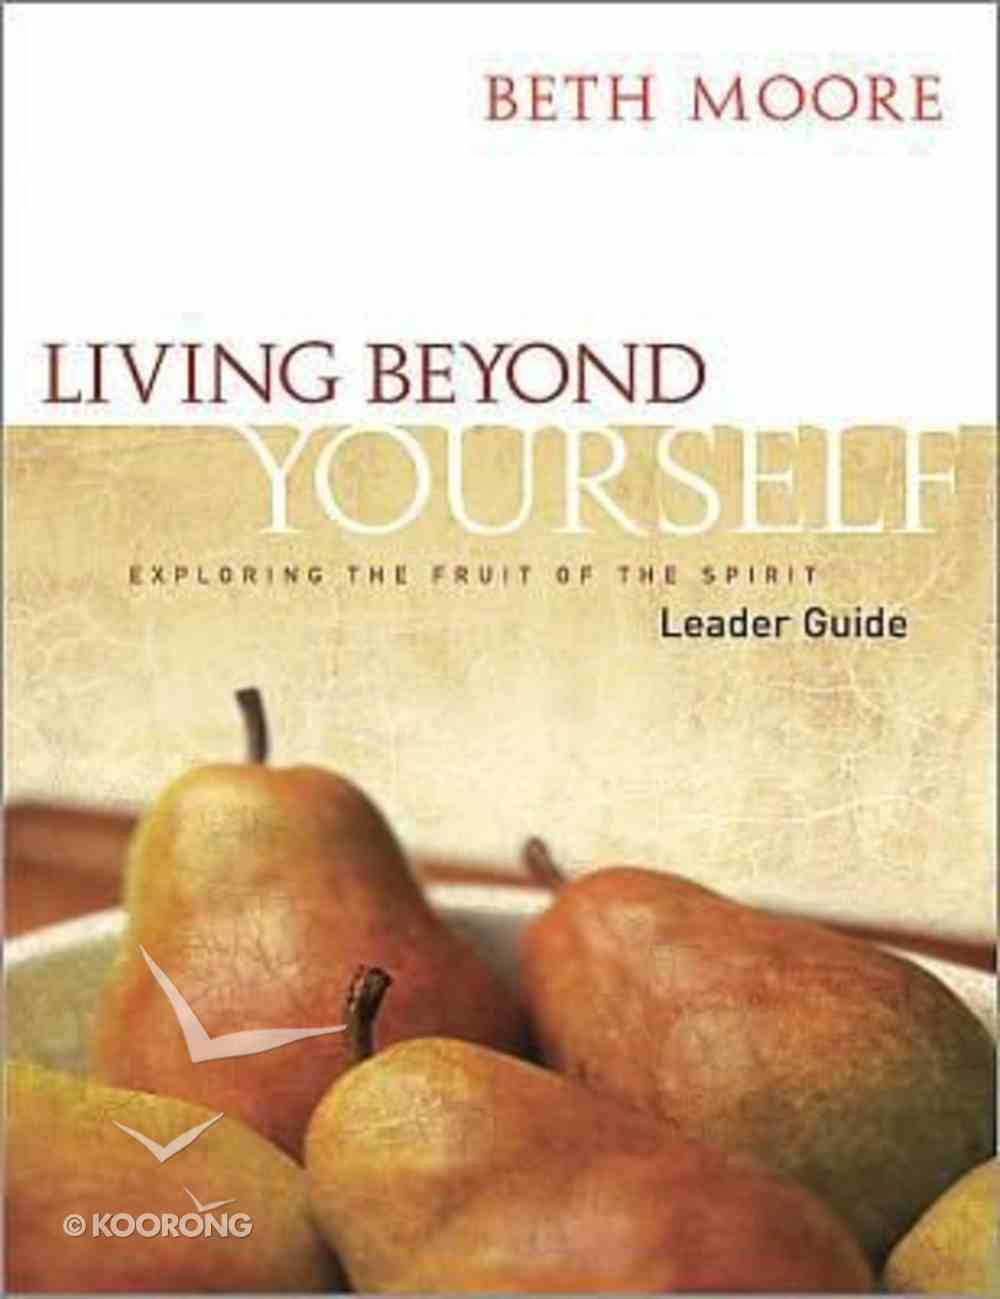 Living Beyond Yourself : Exploring the Fruits of the Spirit (Leader Guide) (Beth Moore Bible Study Series) Paperback